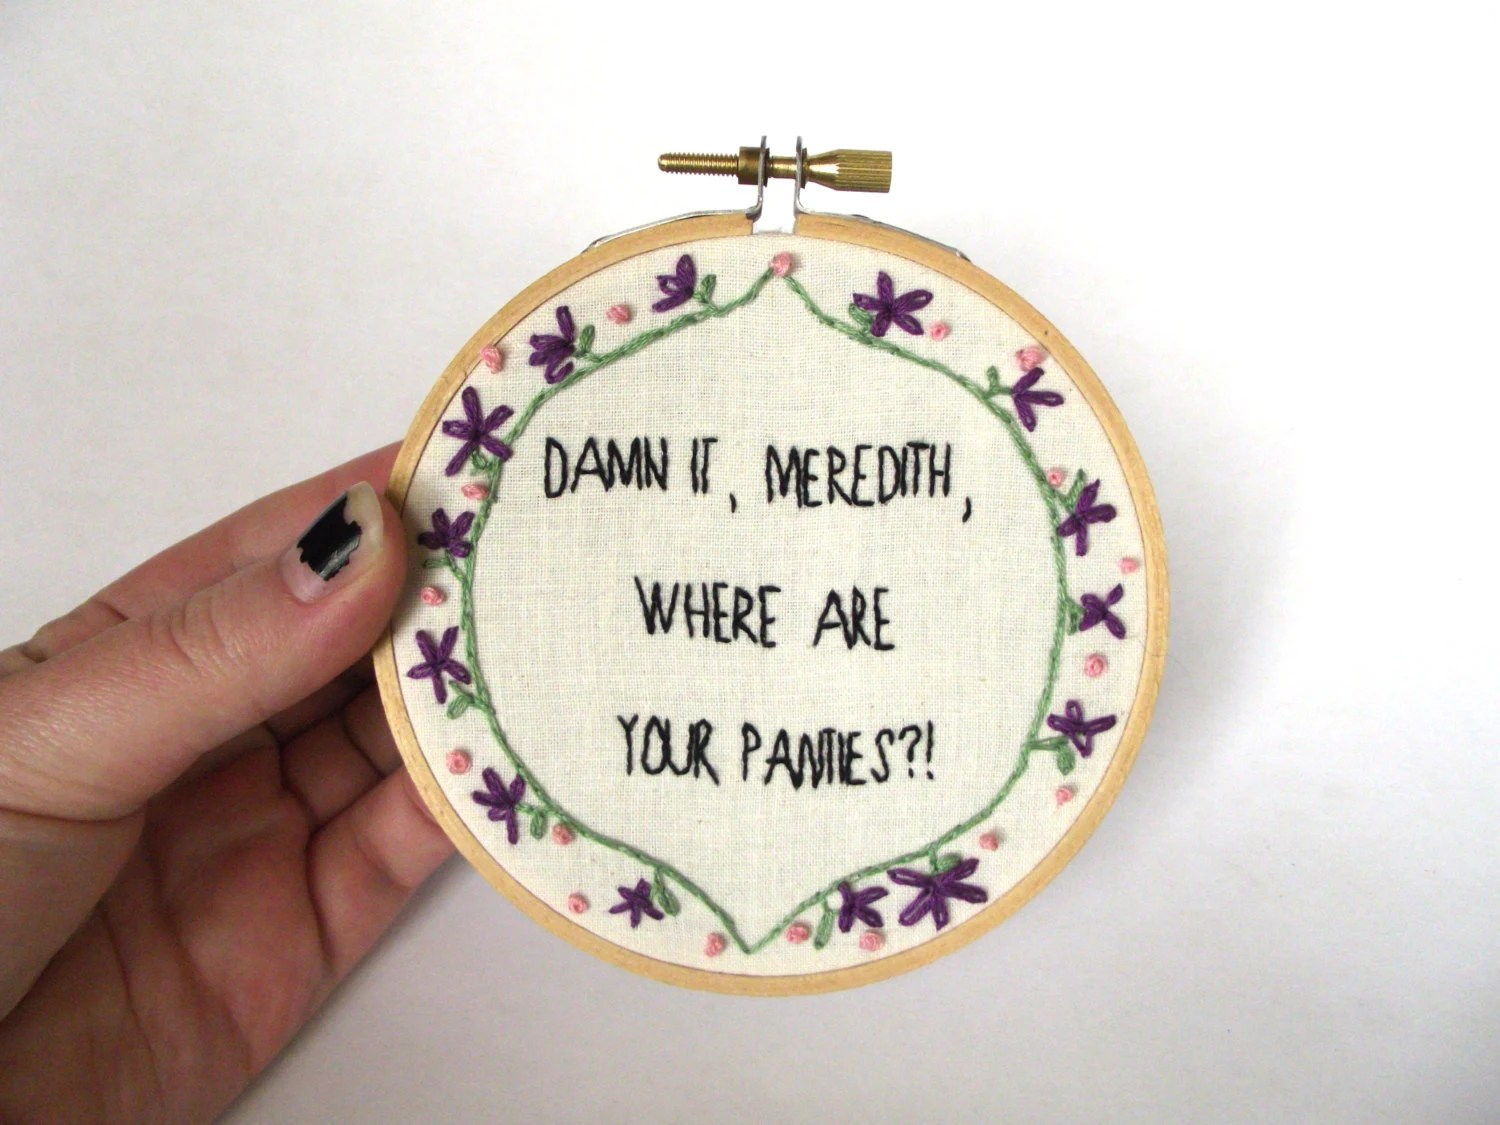 Damn it Meredith where are your panties - The Office tv show - hand embroidered quote framed in 4 inch hoop, vegan